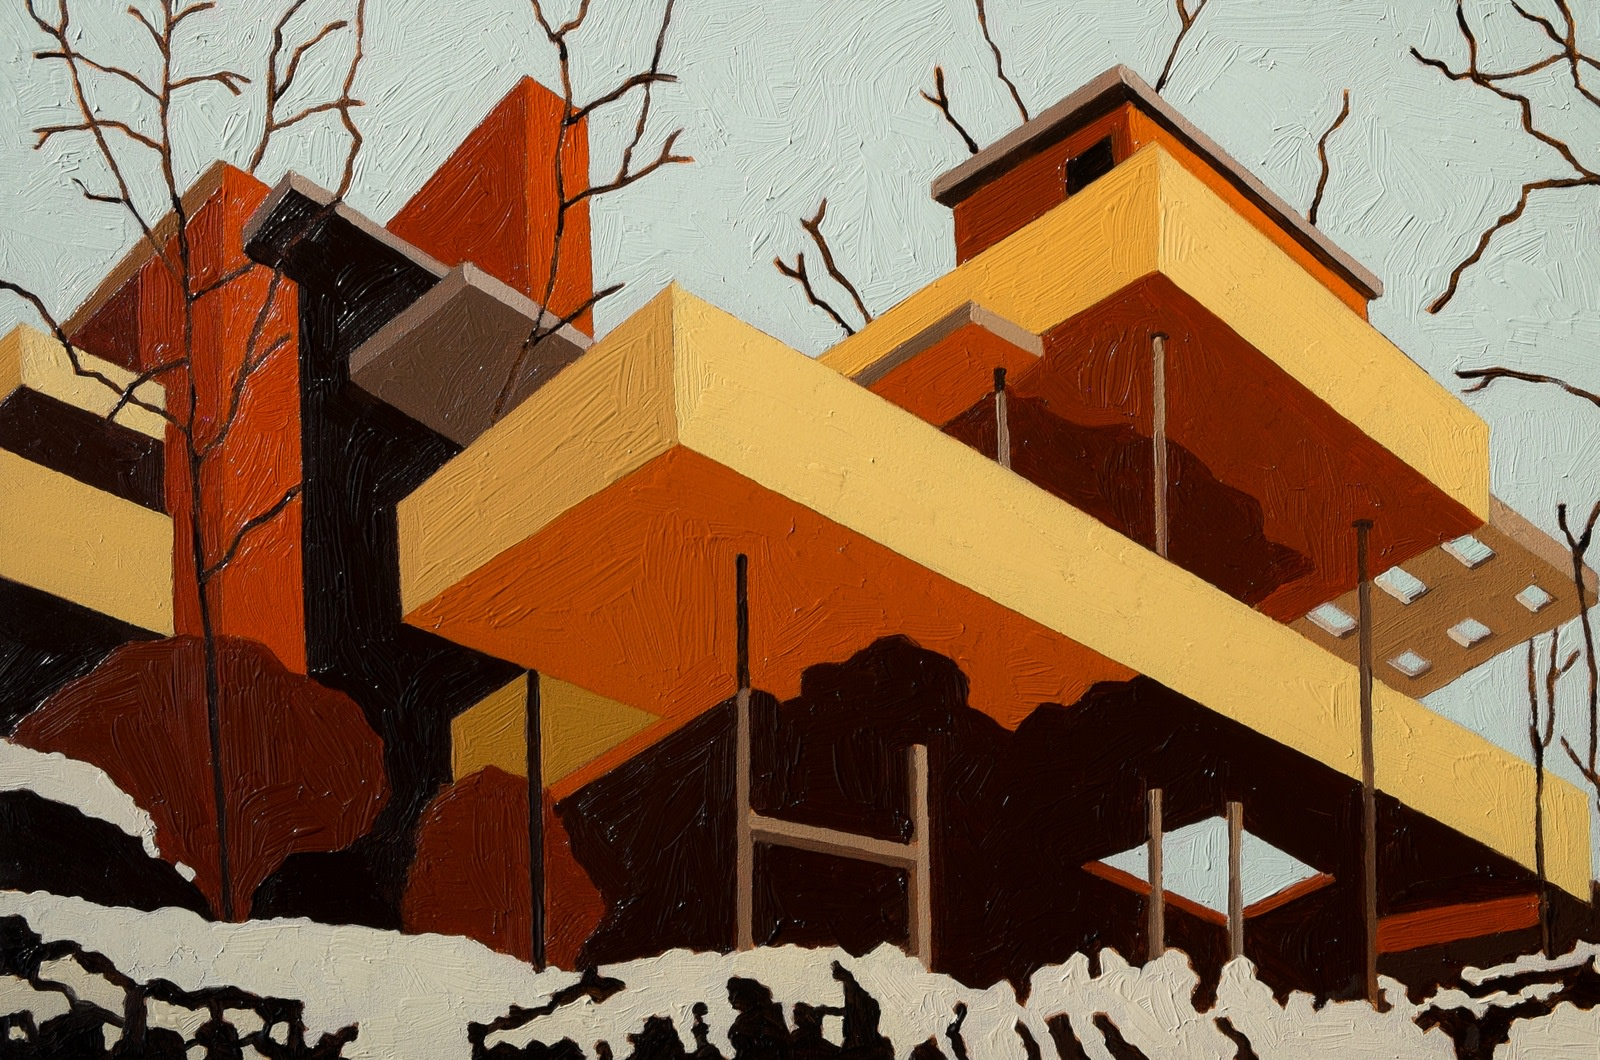 "<span class=""link fancybox-details-link""><a href=""/exhibitions/33/works/artworks412/"">View Detail Page</a></span><div class=""artist""><strong>Andy Burgess</strong></div><div class=""title""><em>Fallingwater</em>, 2016</div><div class=""medium"">Oil on panel </div><div class=""dimensions"">15.2 x 22.9 cm<br>6 x 9 in.</div>"